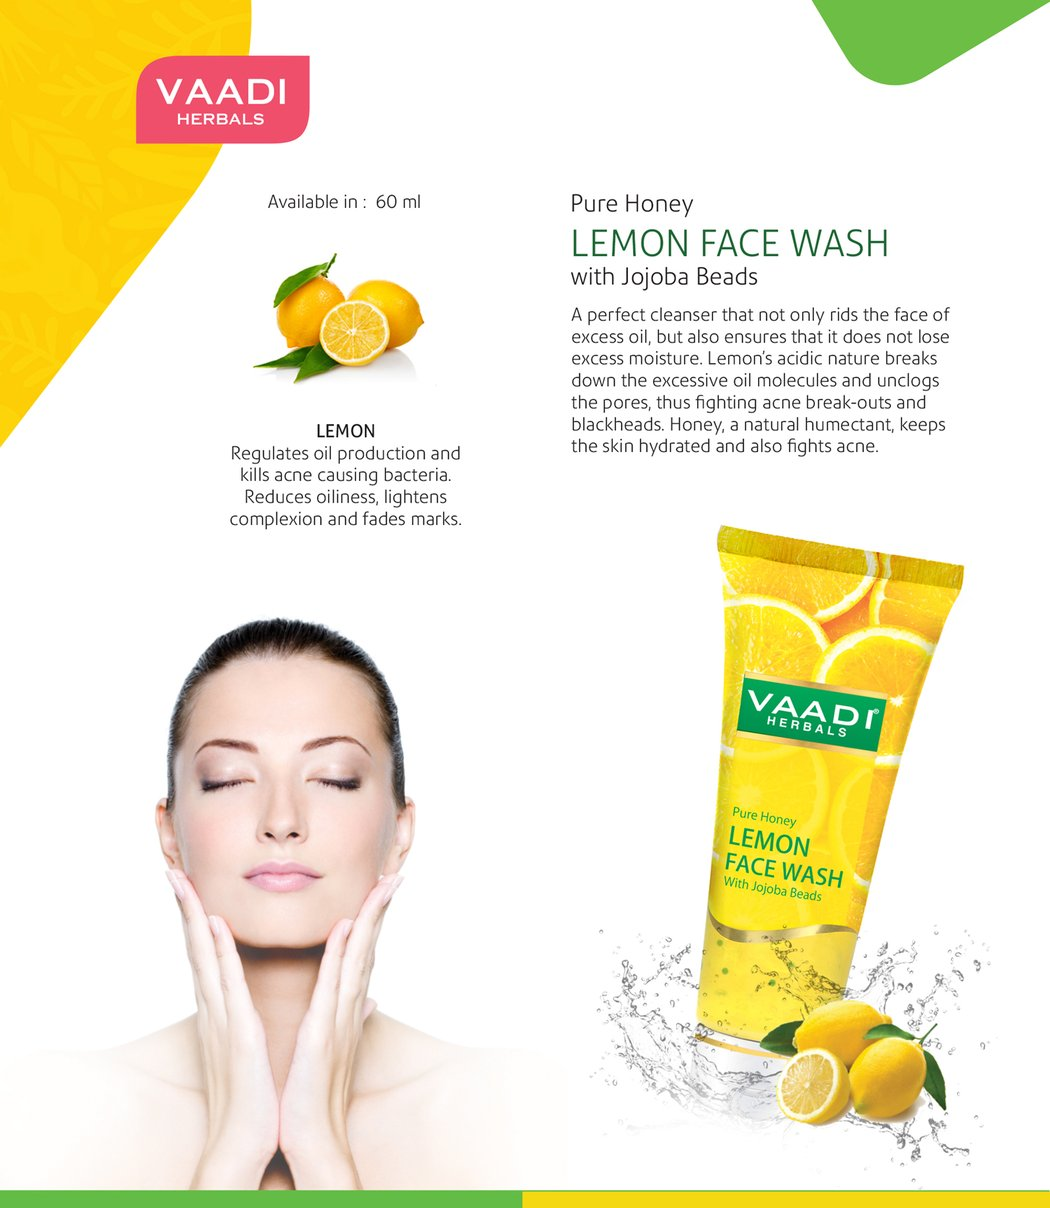 Skin Hydrating Organic Lemon Face Wash with Jojoba Beads - Removes Excess Oil - Prevents Acne (4 x 60 ml / 2.1 fl oz)